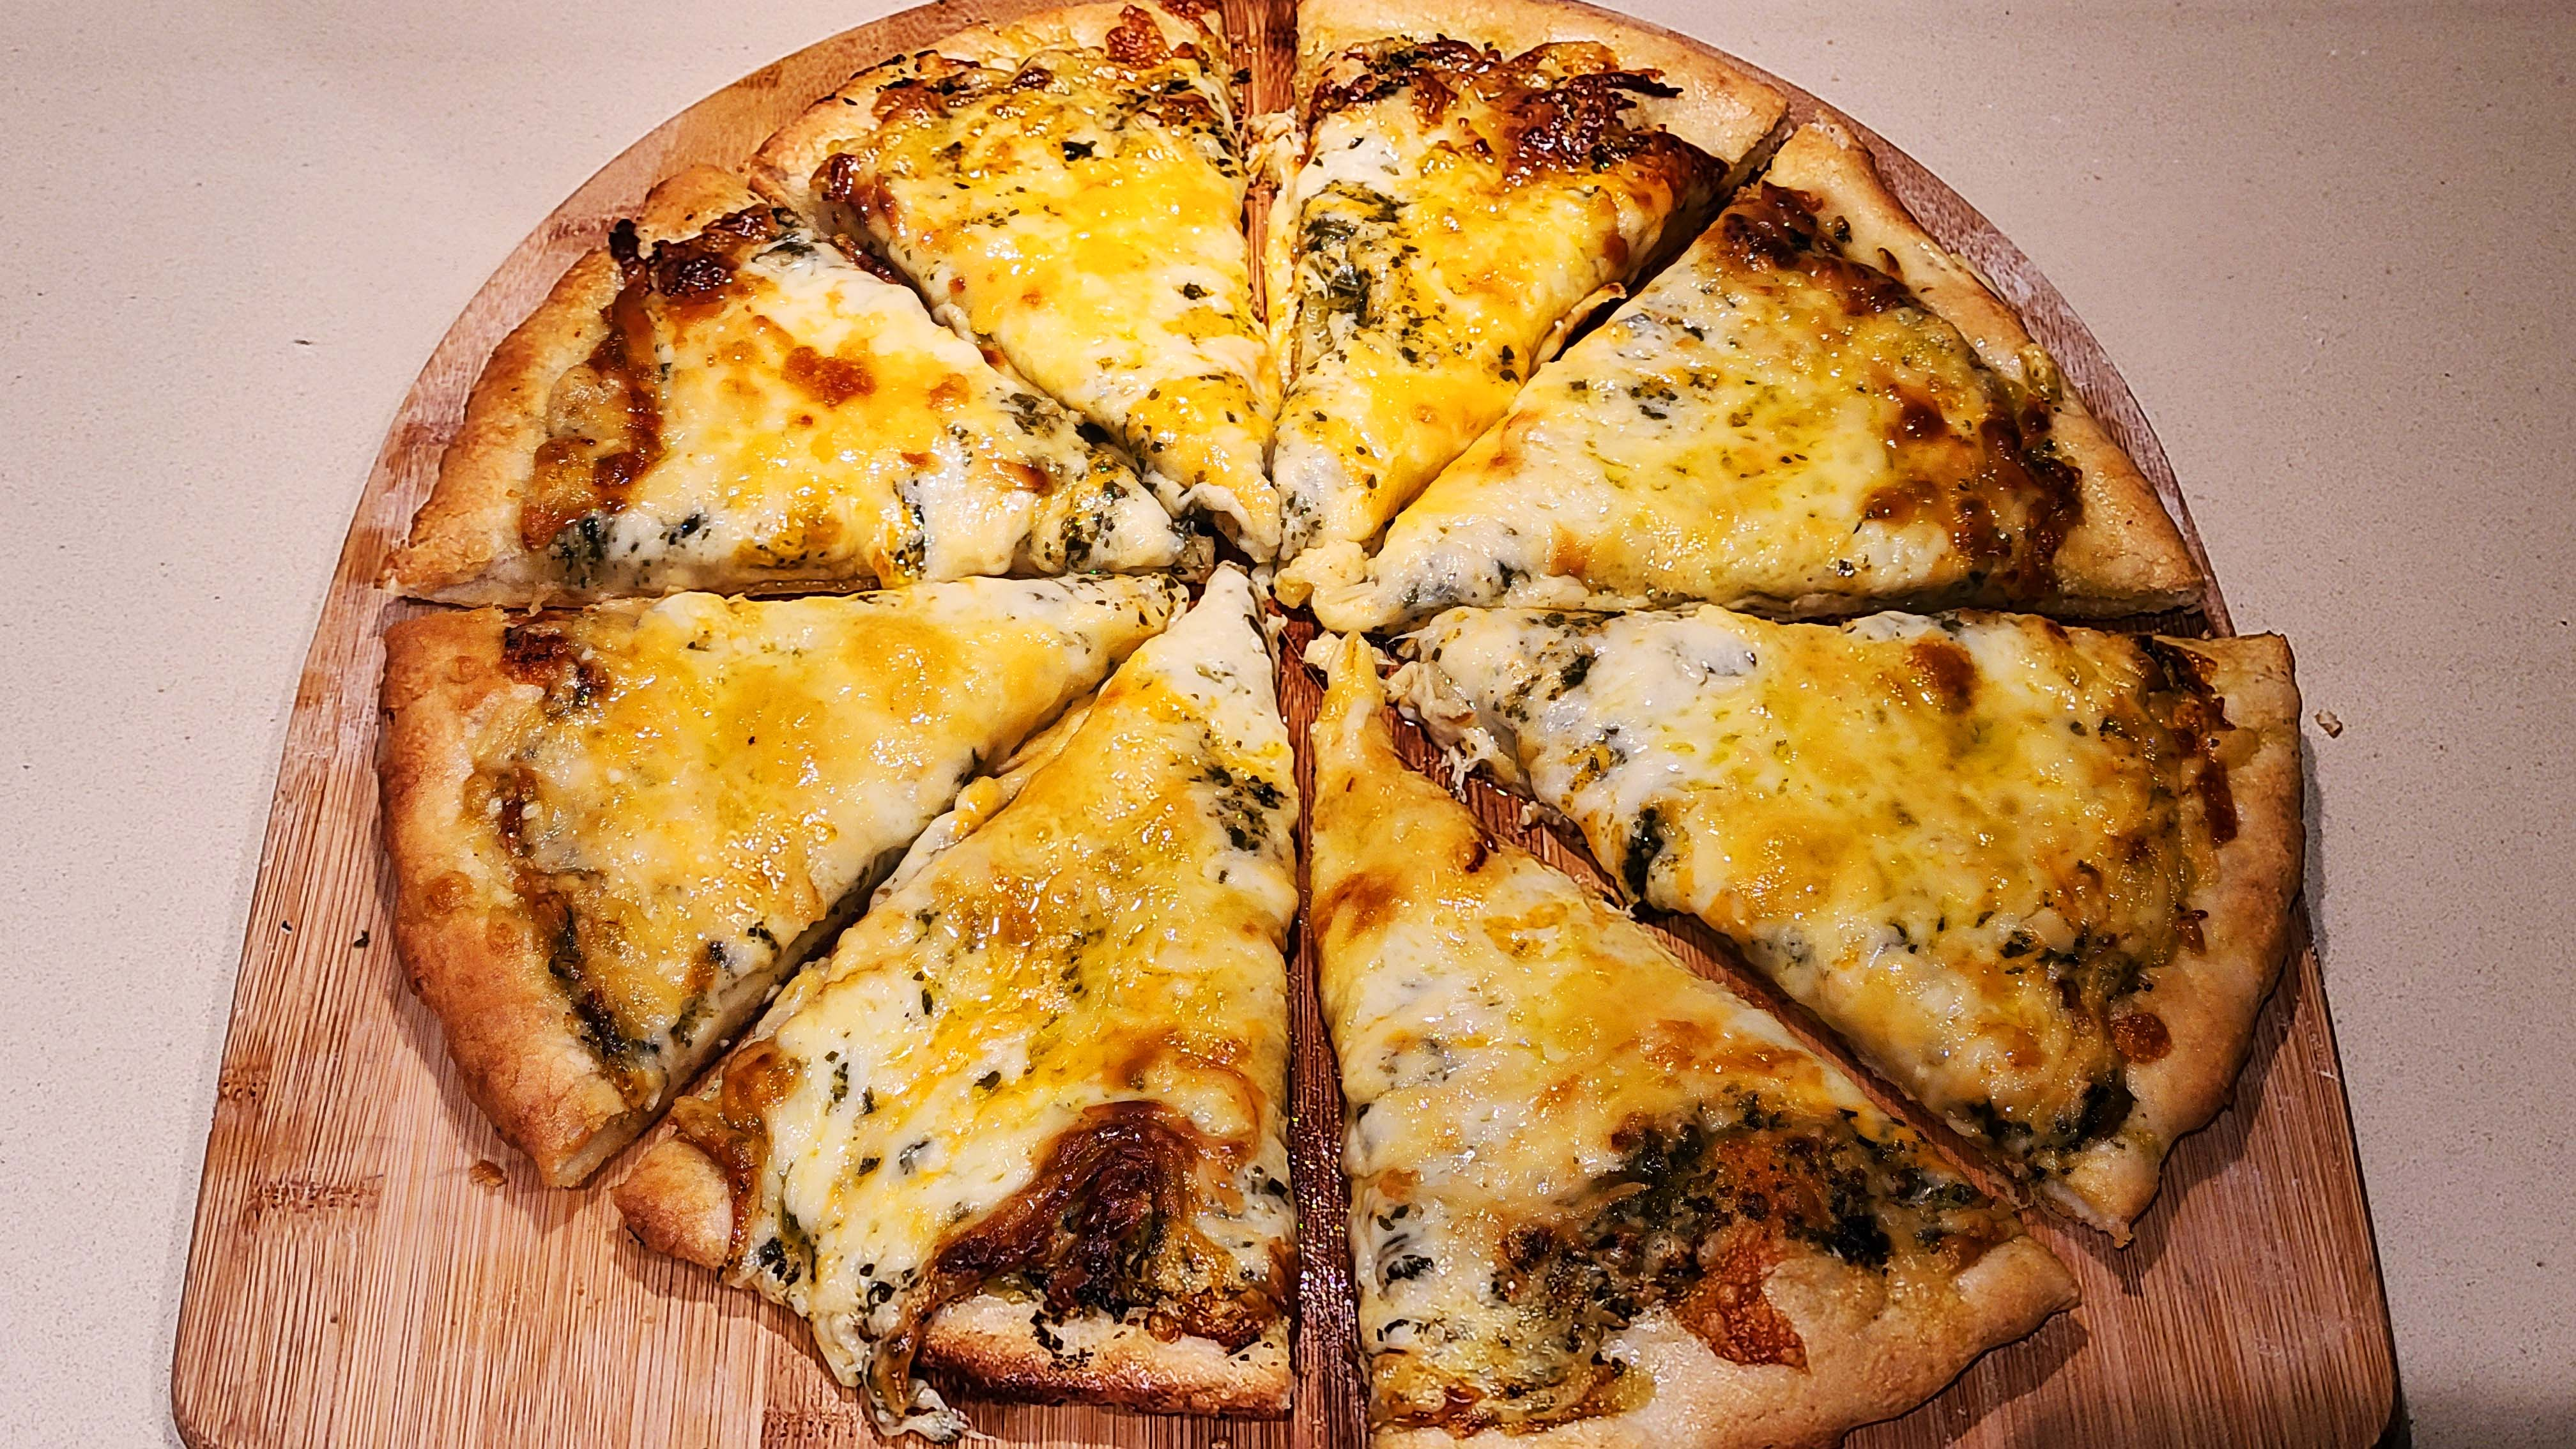 8 Cheese Pesto Pizza Recipe